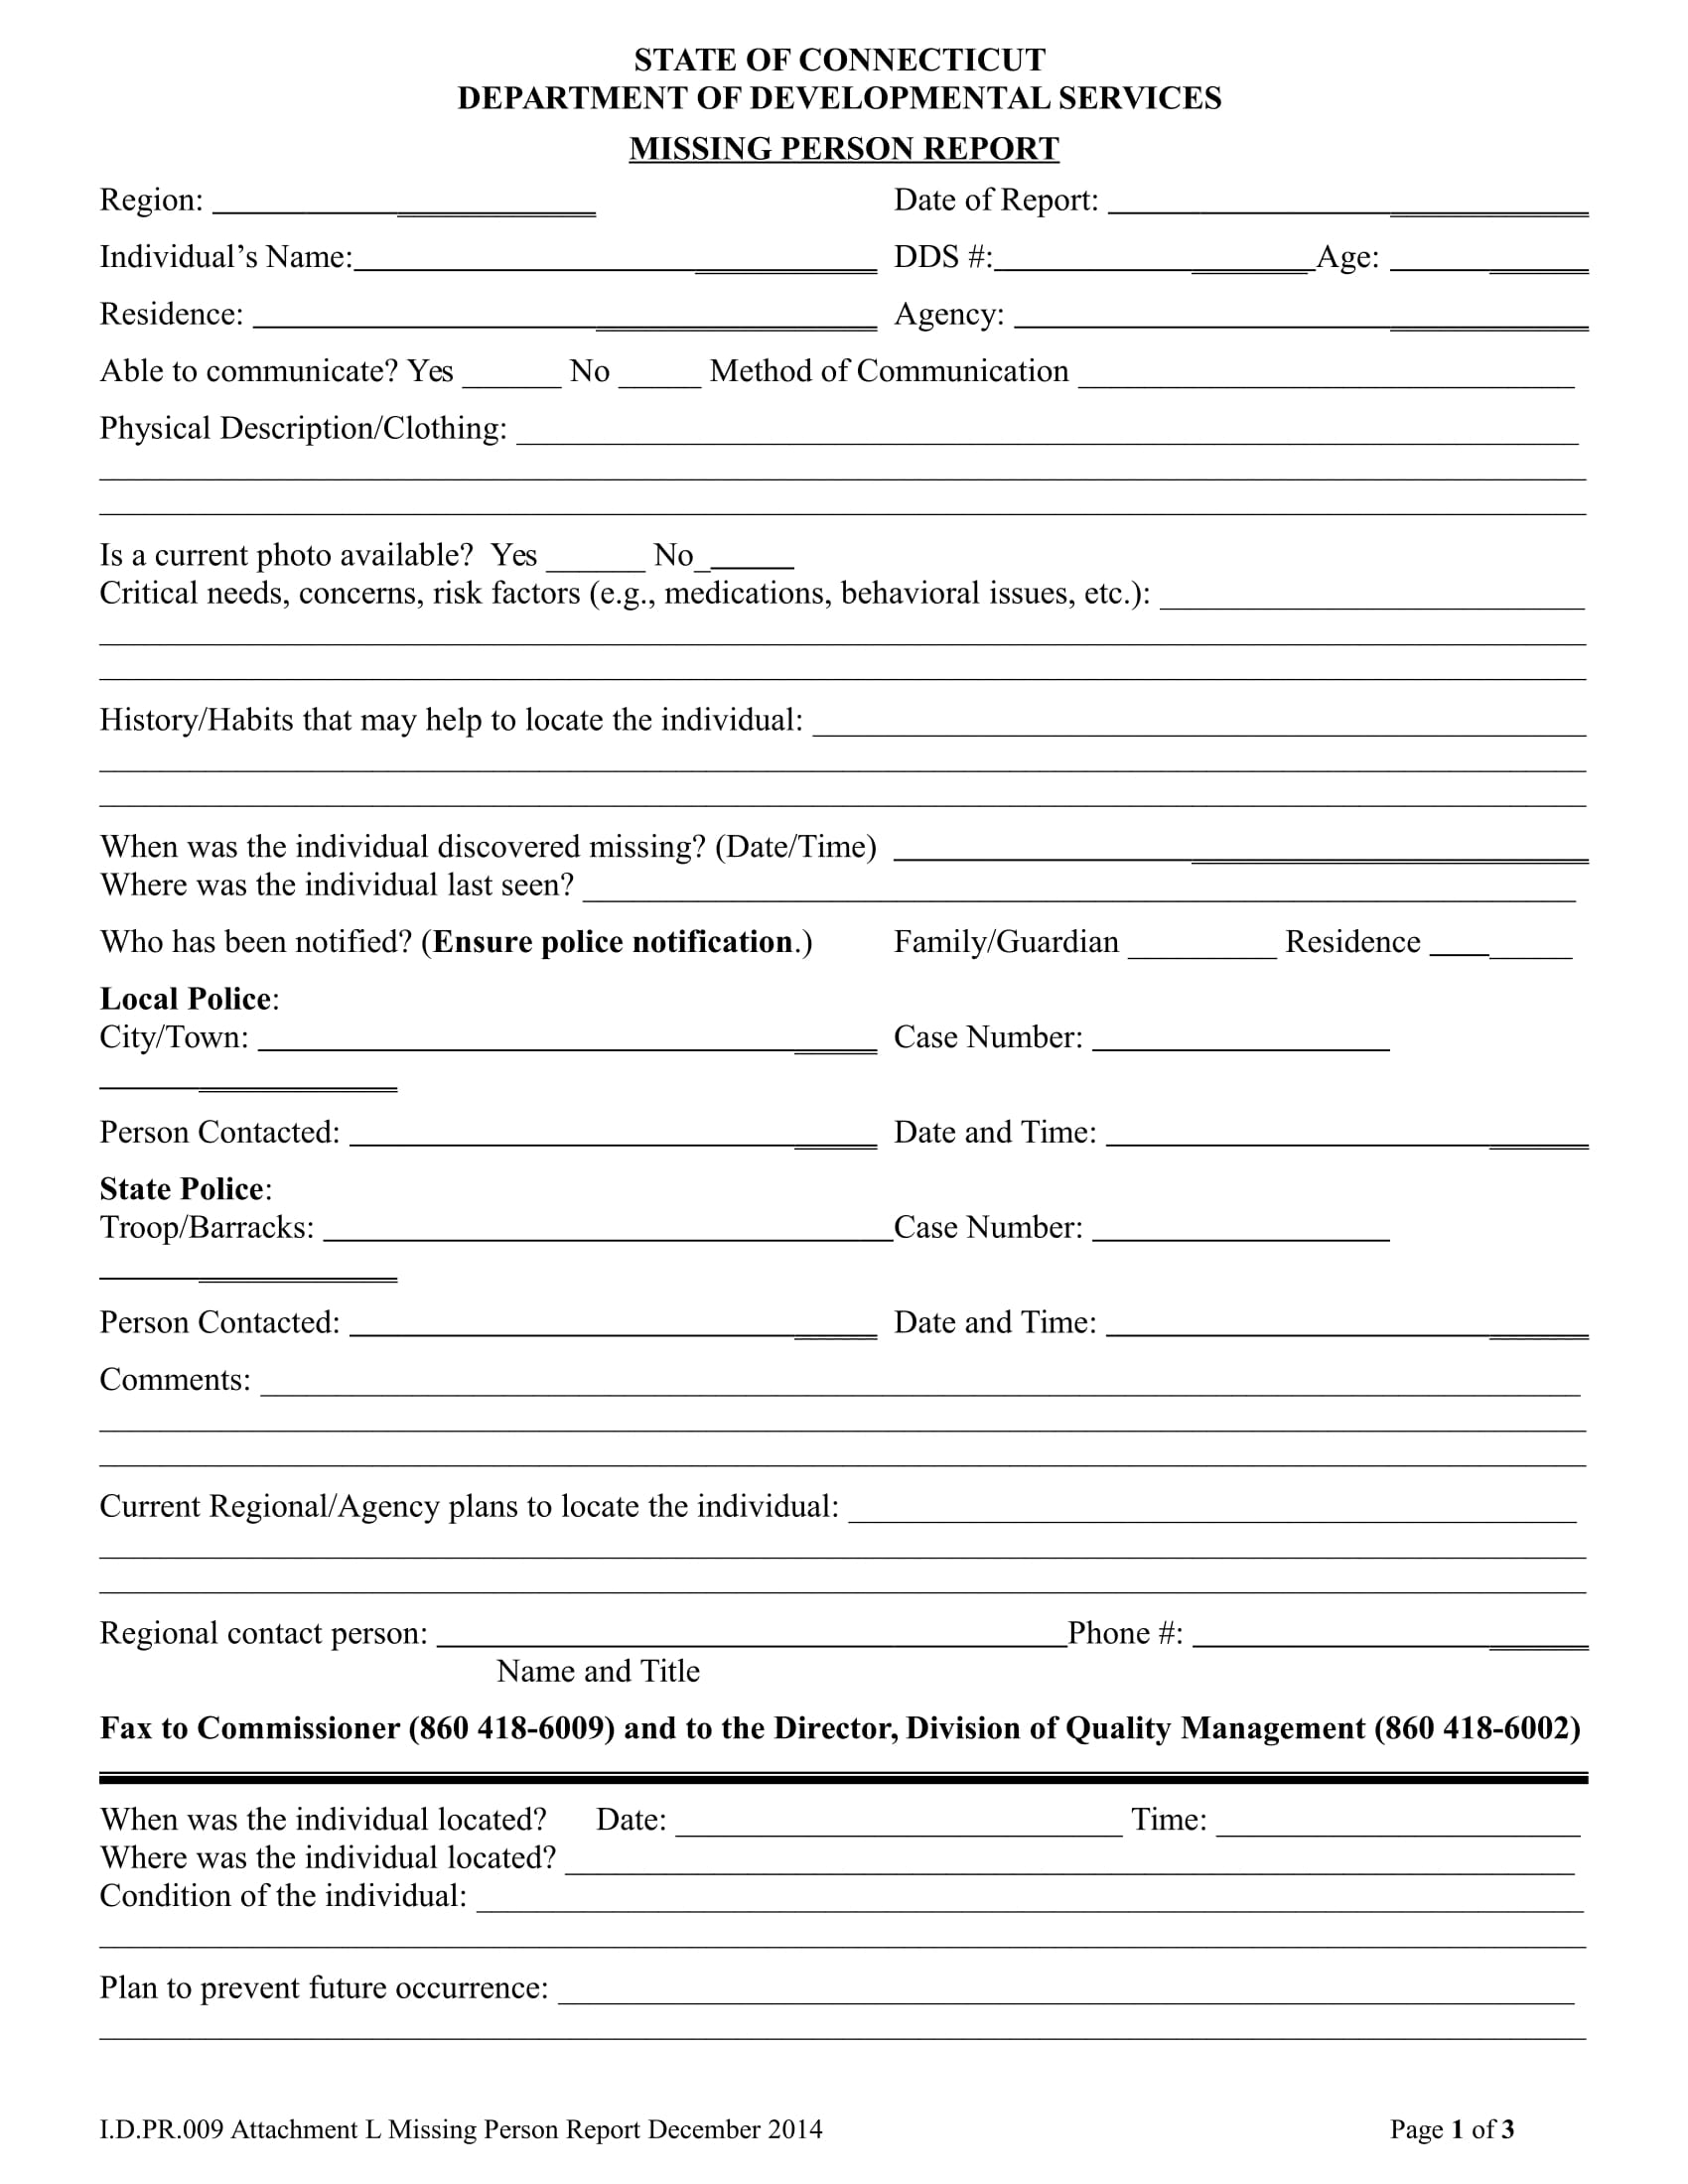 report form for missing person 1